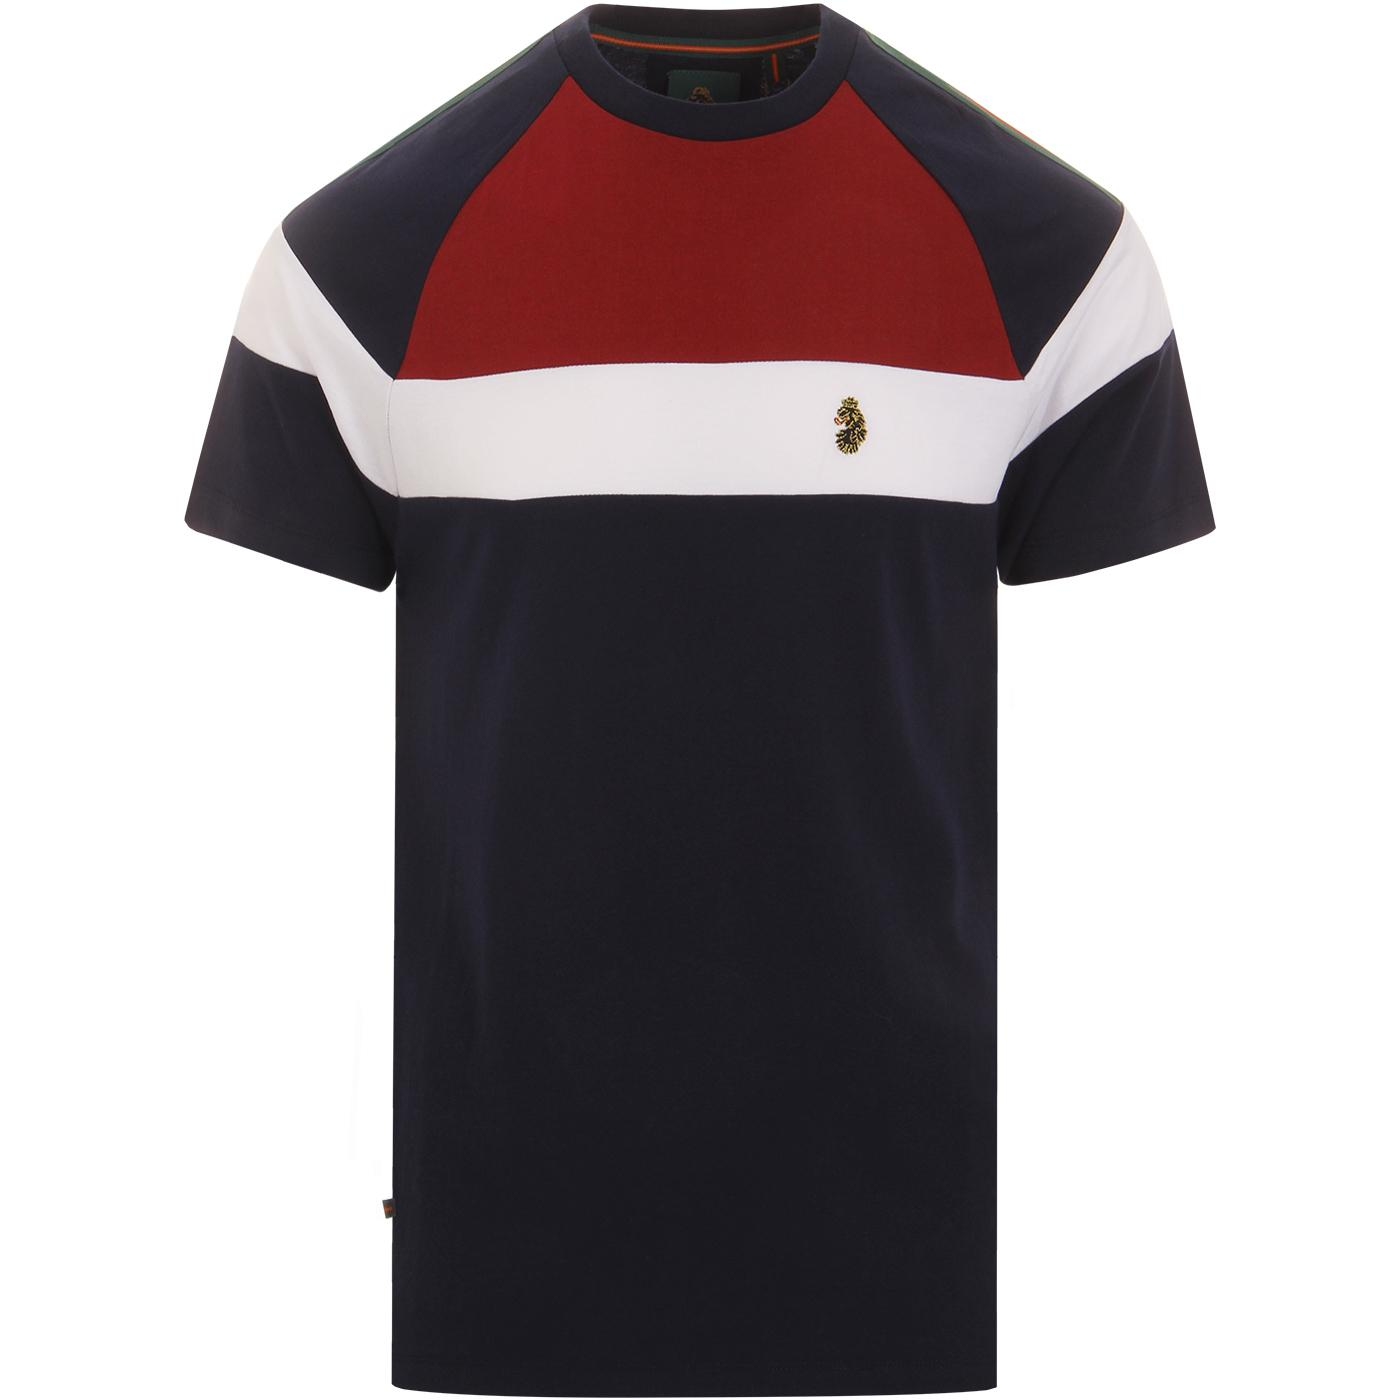 Teedam LUKE Mens Retro Colour Block T-shirt (Navy)